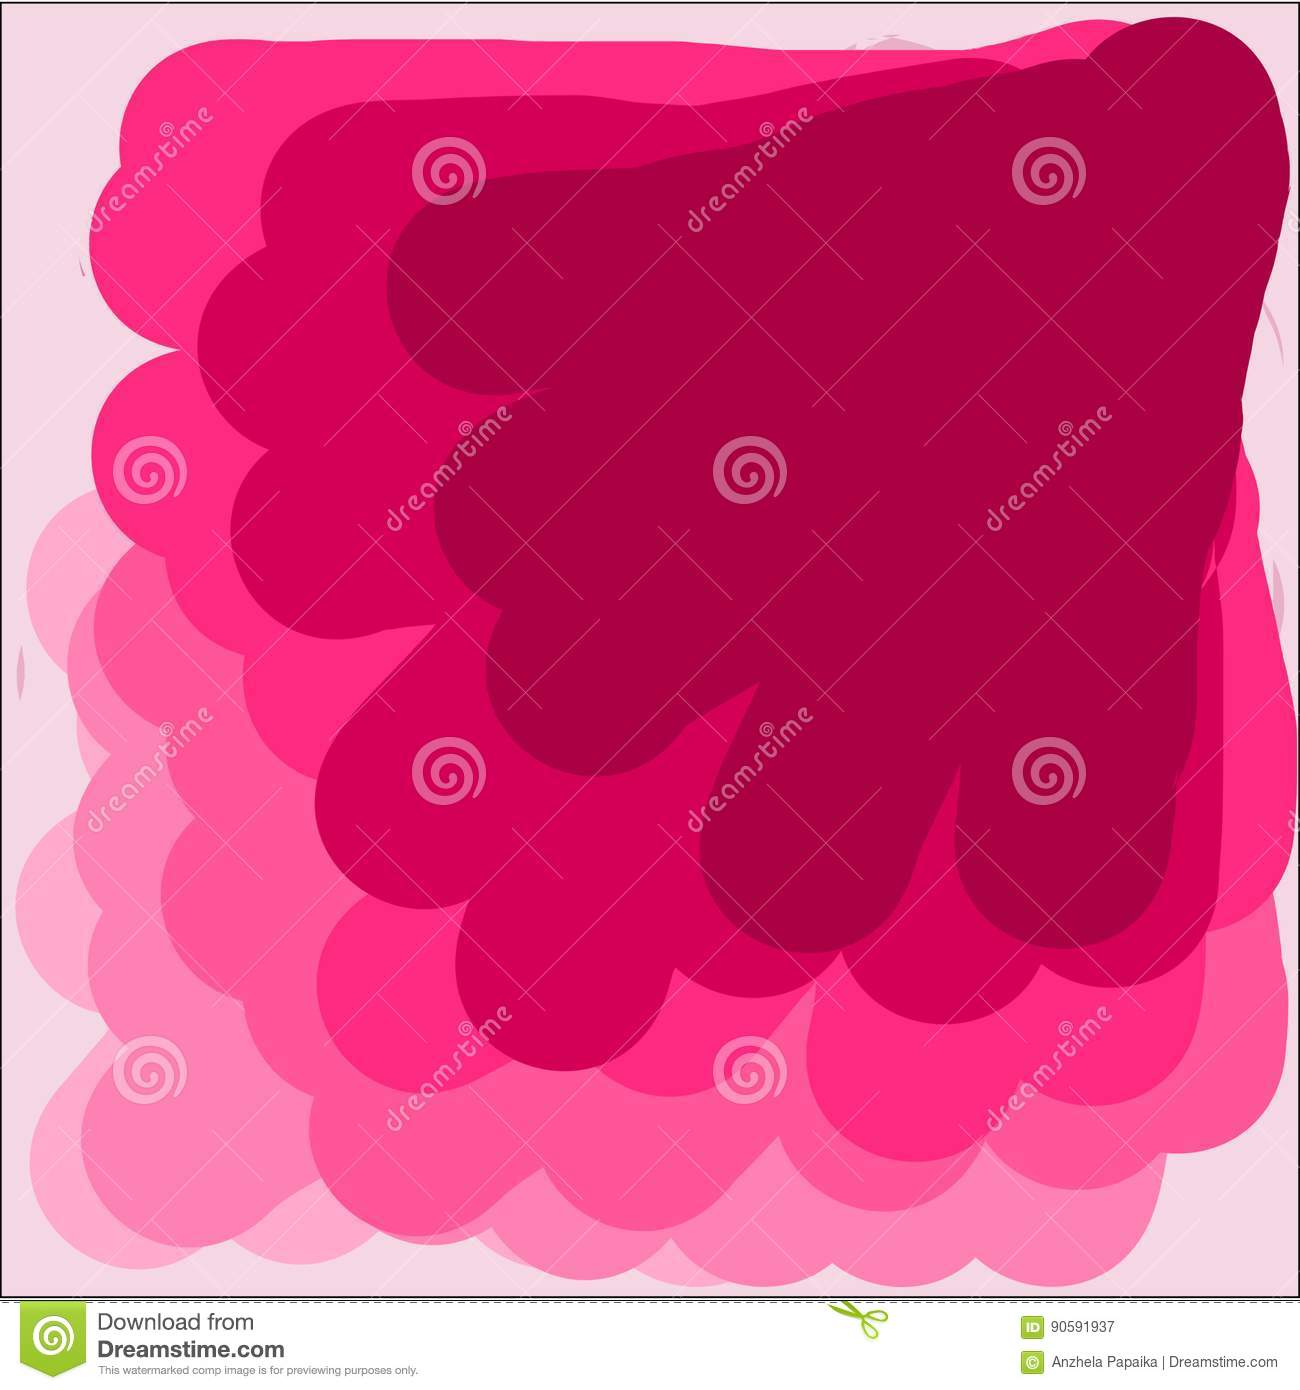 Creative Universal Abstract Greeting Cards In Pink Light And Dark